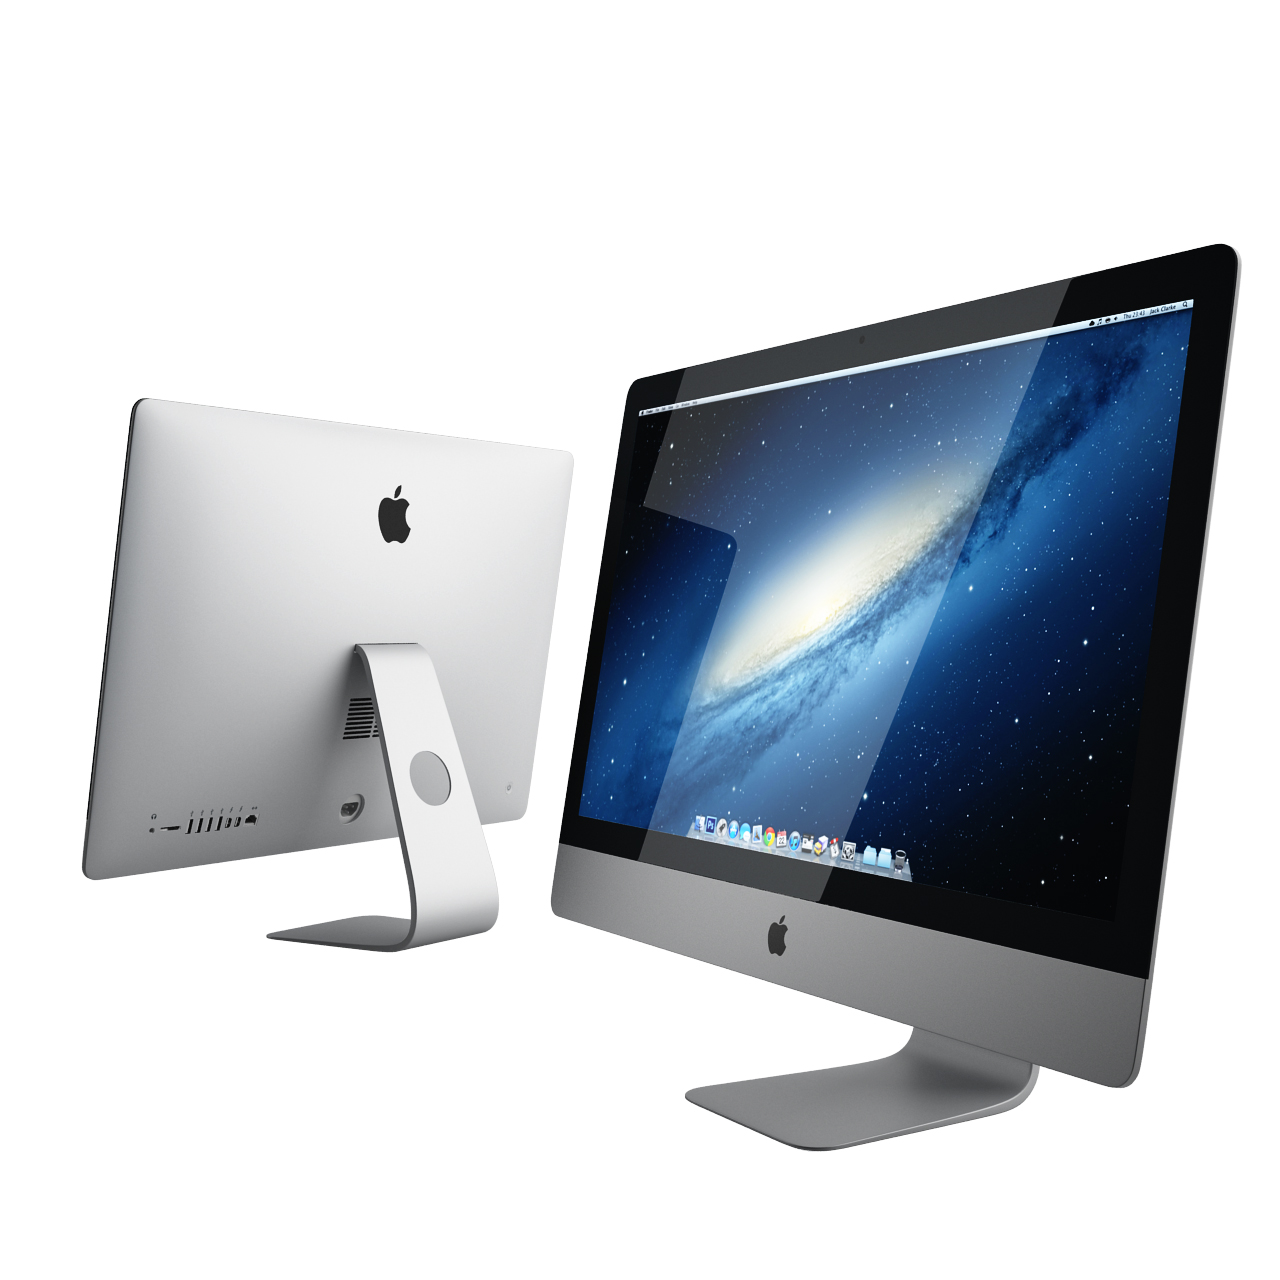 New Imac By Apple Dimensiva